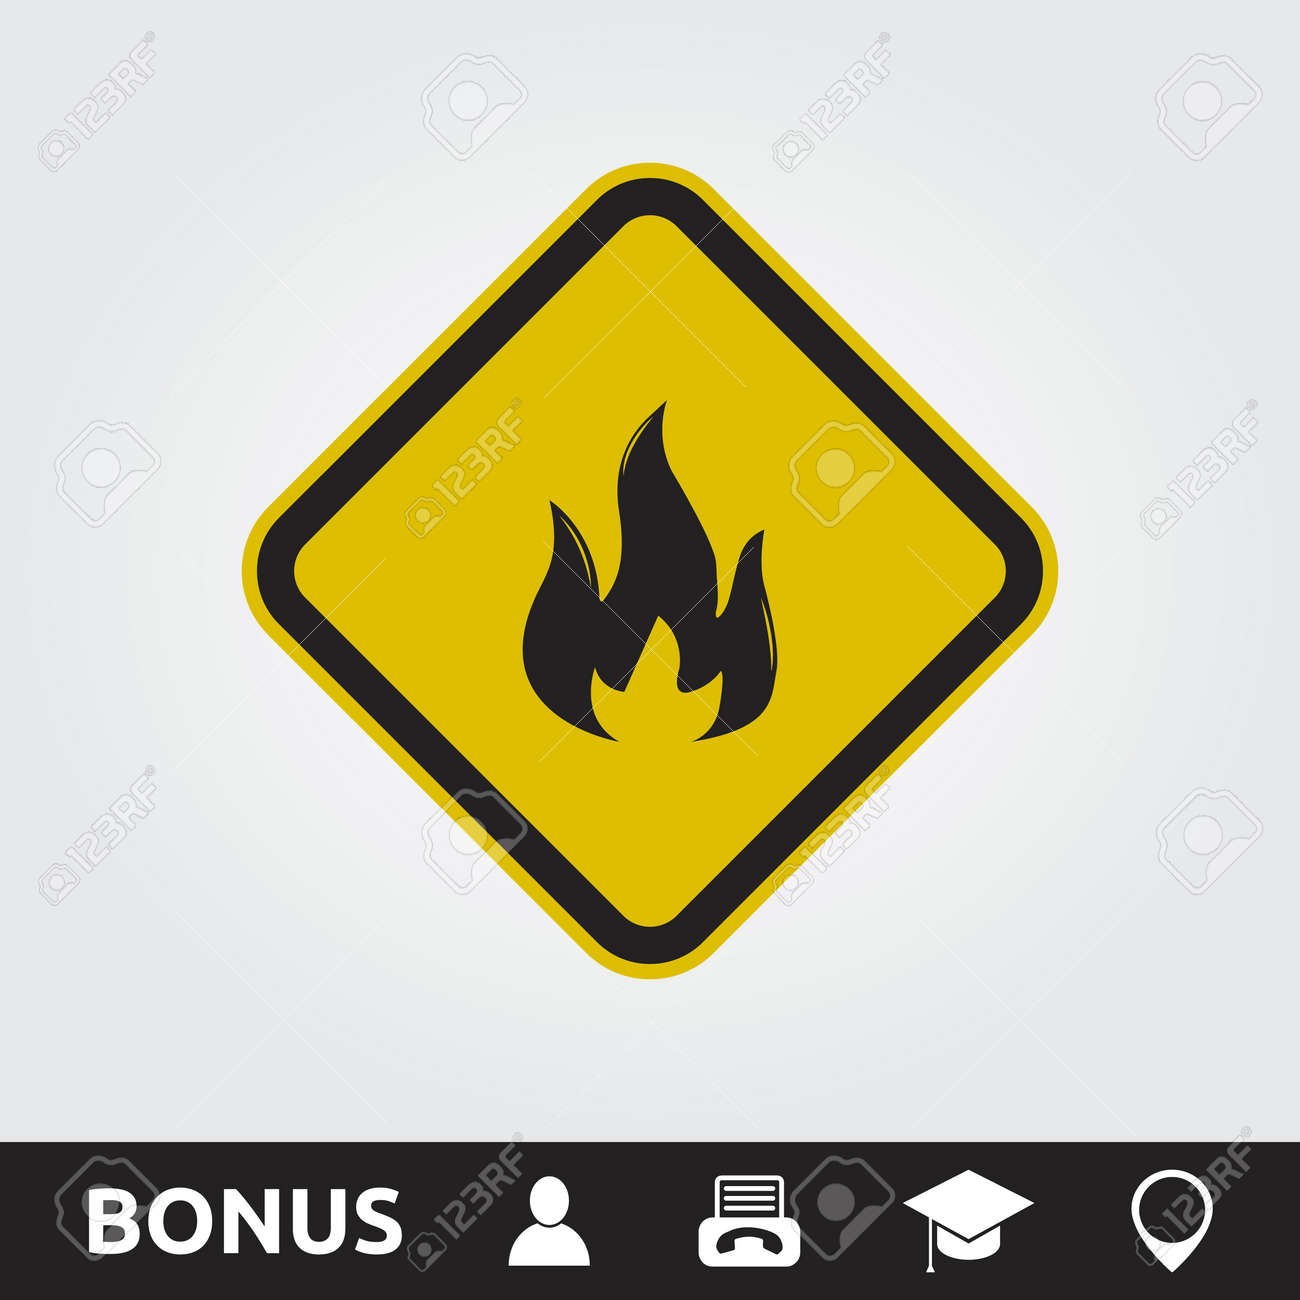 Fire Hazard Square Sign Royalty Free Cliparts Vectors And Stock